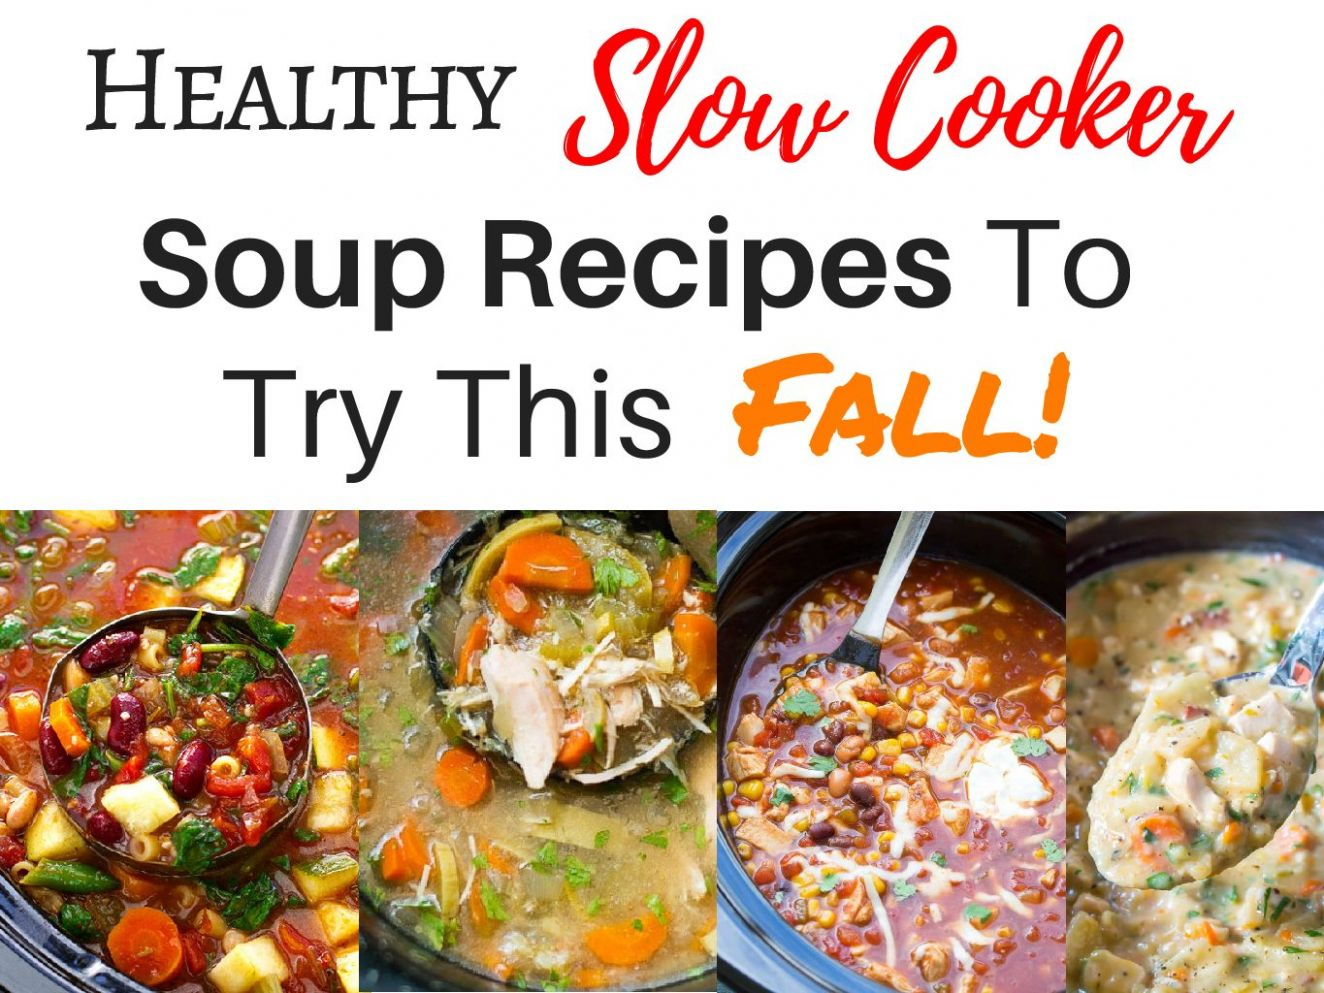 Slow Cooker Soup Recipes That are Easy and Healthy For Busy Days - Soup Recipes Pdf